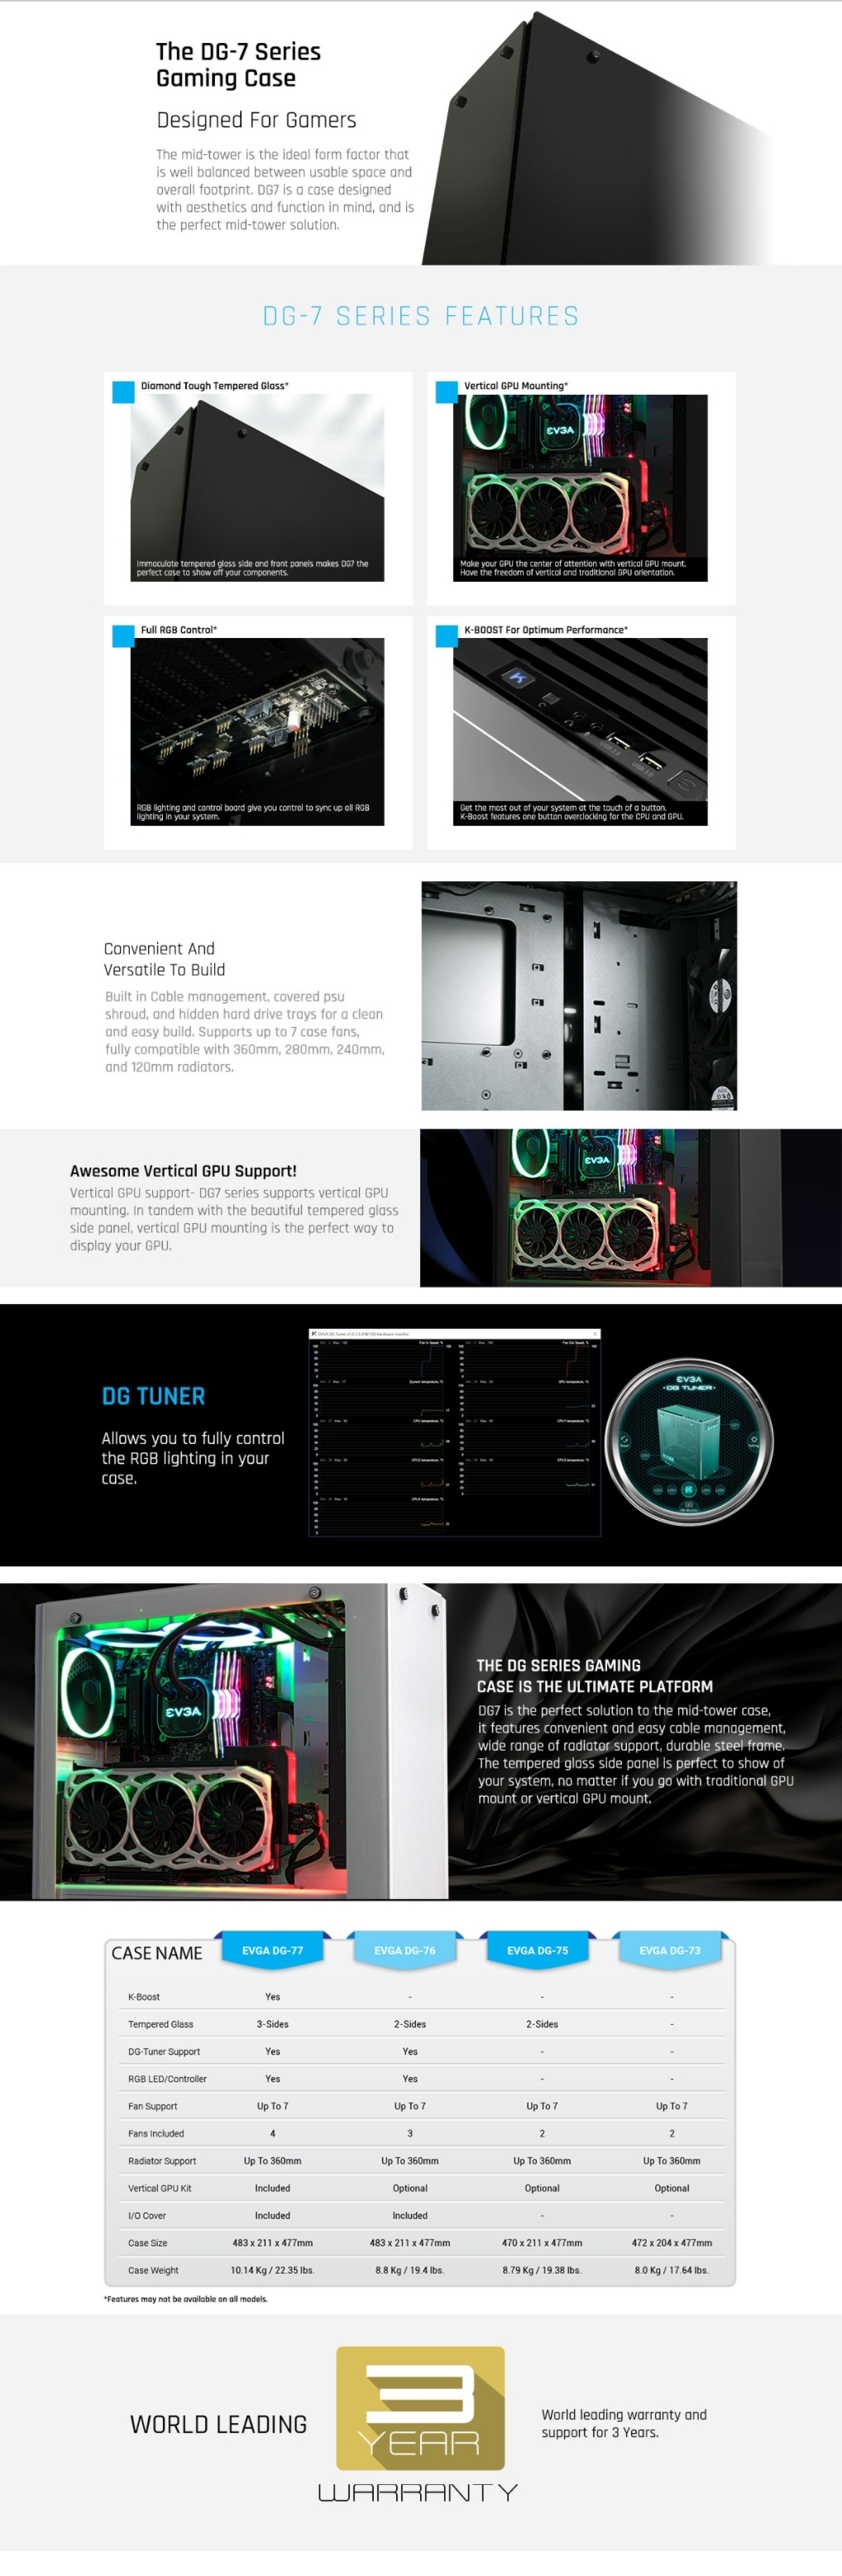 A large marketing image providing additional information about the product eVGA DG-77 Matte Black w/ Tempered Glass RGB Mid Tower - Additional alt info not provided